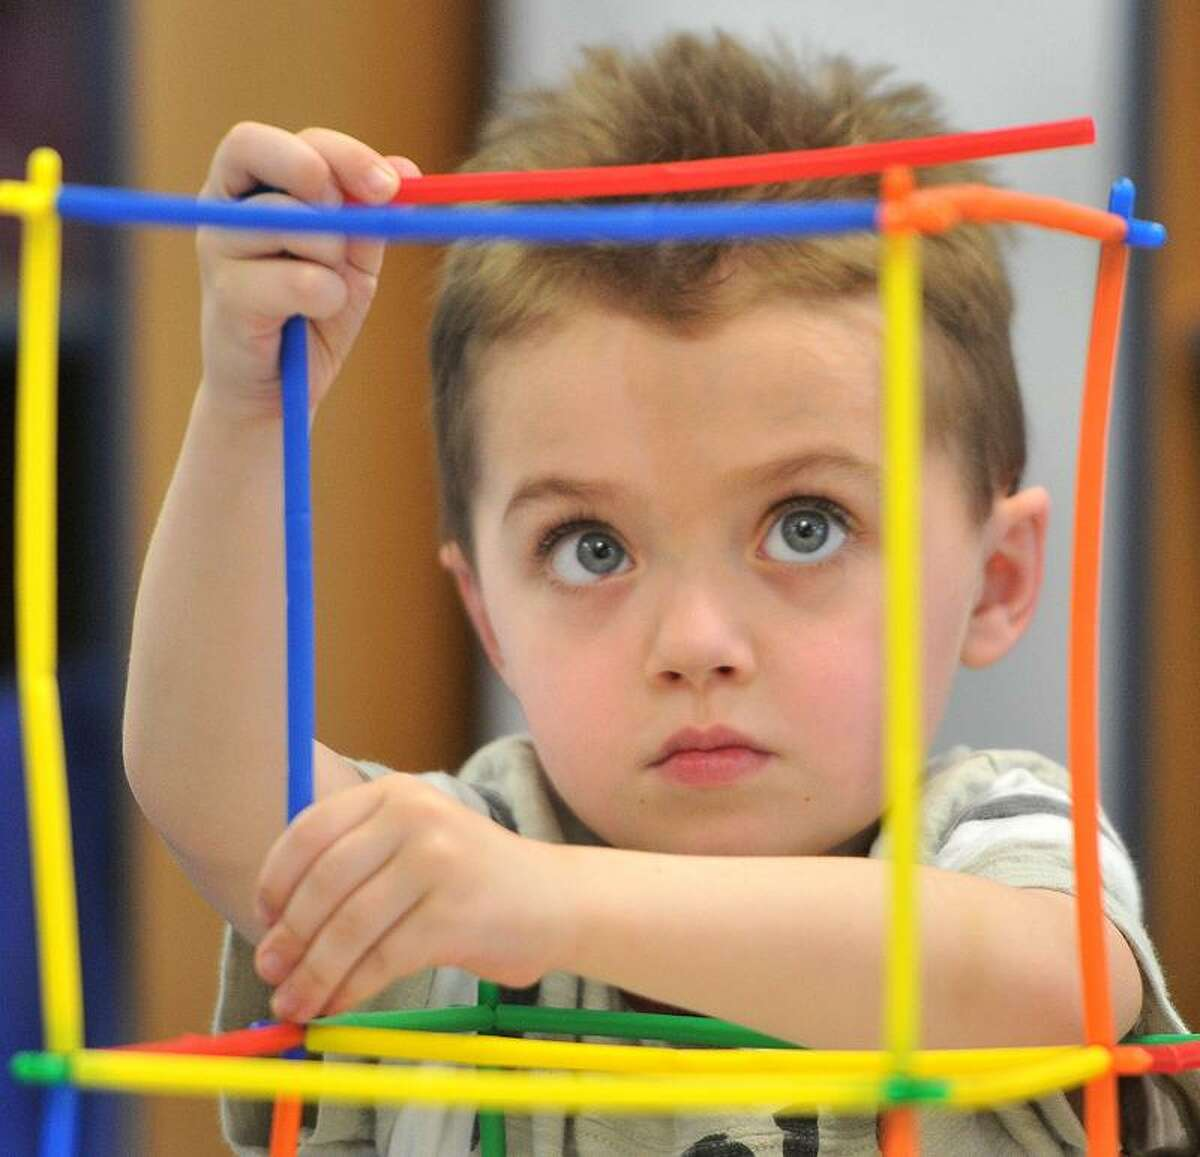 North Branford--Kindergartner Pete Podoloff concentrates on his building Monday morning at the new Family Resource Center building at Jerome Harrison Elementary School in North Branford. Monday was the first day the students were in the new building. Photo by Brad Horrigan/New Haven Register-04.25.11.